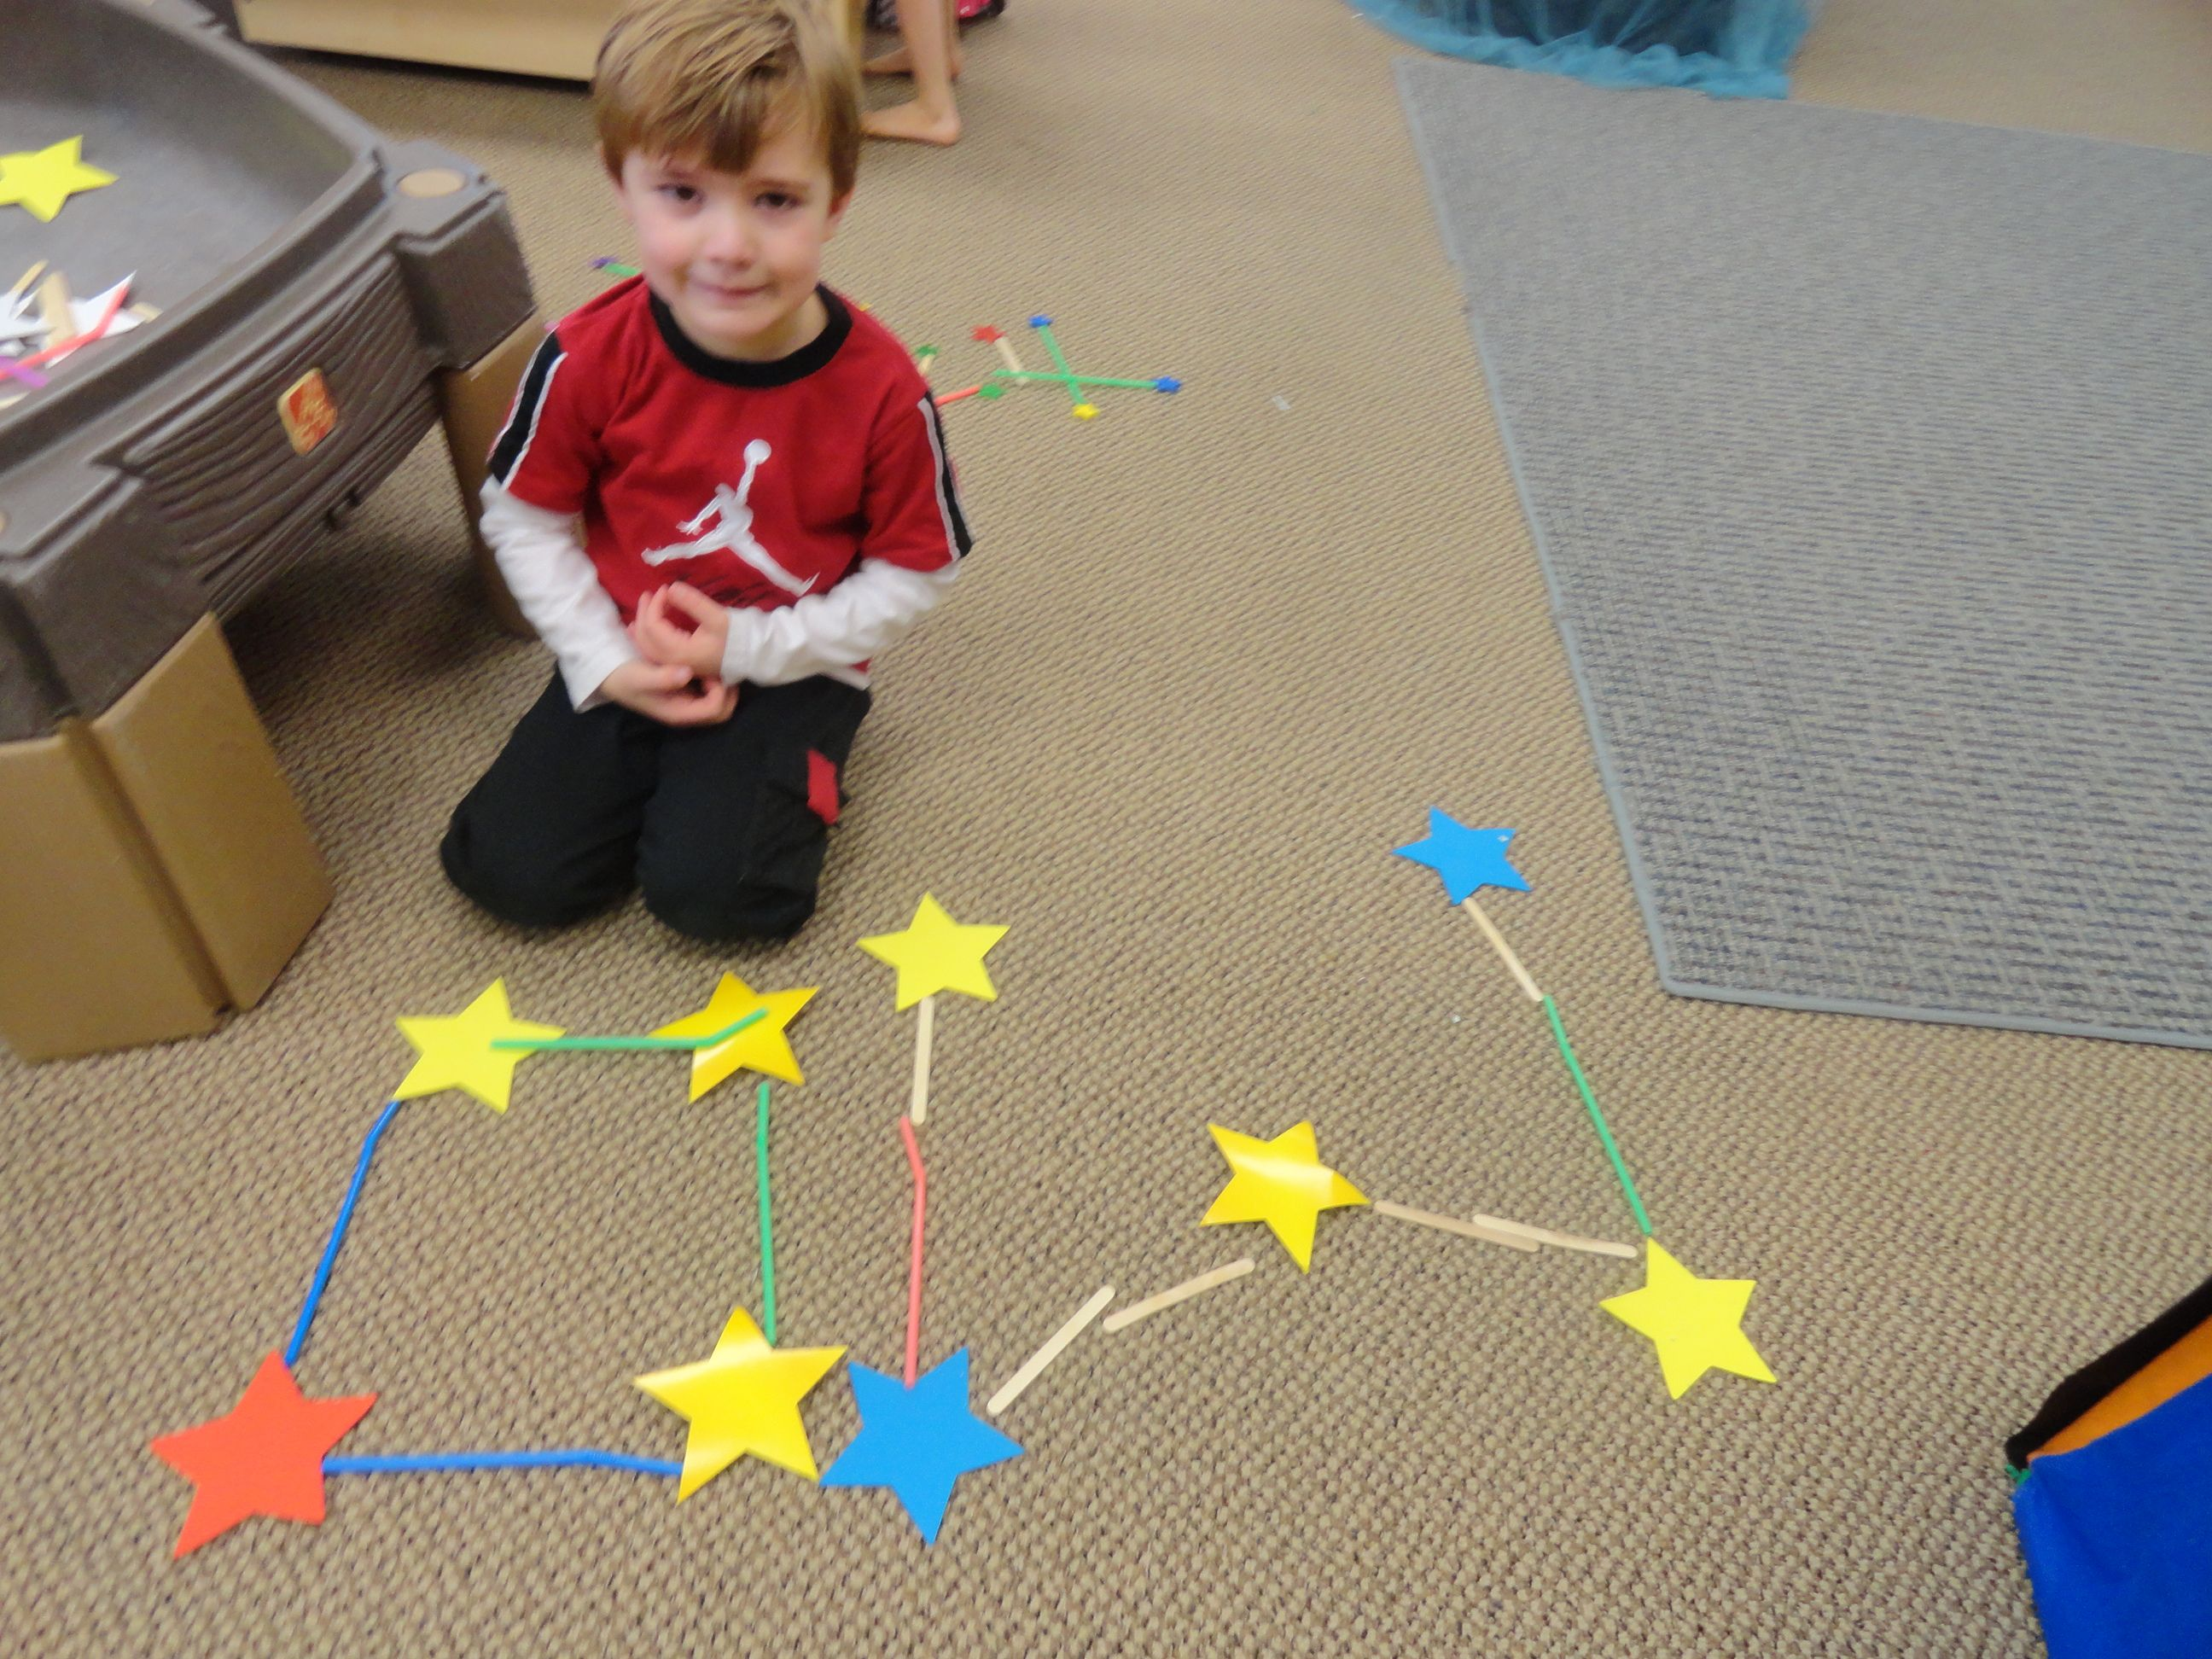 Constellation Building With Paper Stars Craft Sticks And